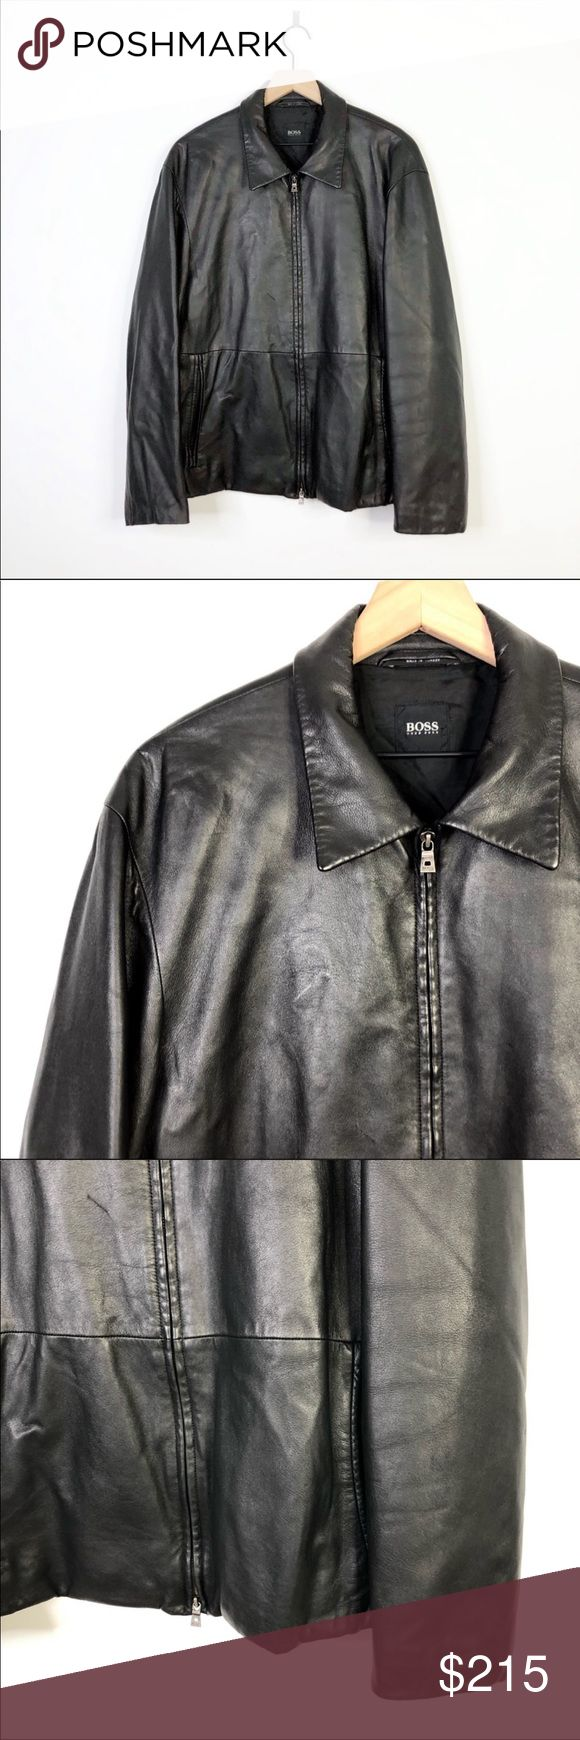 Hugo Boss Black Lambskin Leather Zip Up Jacket 44R Boss